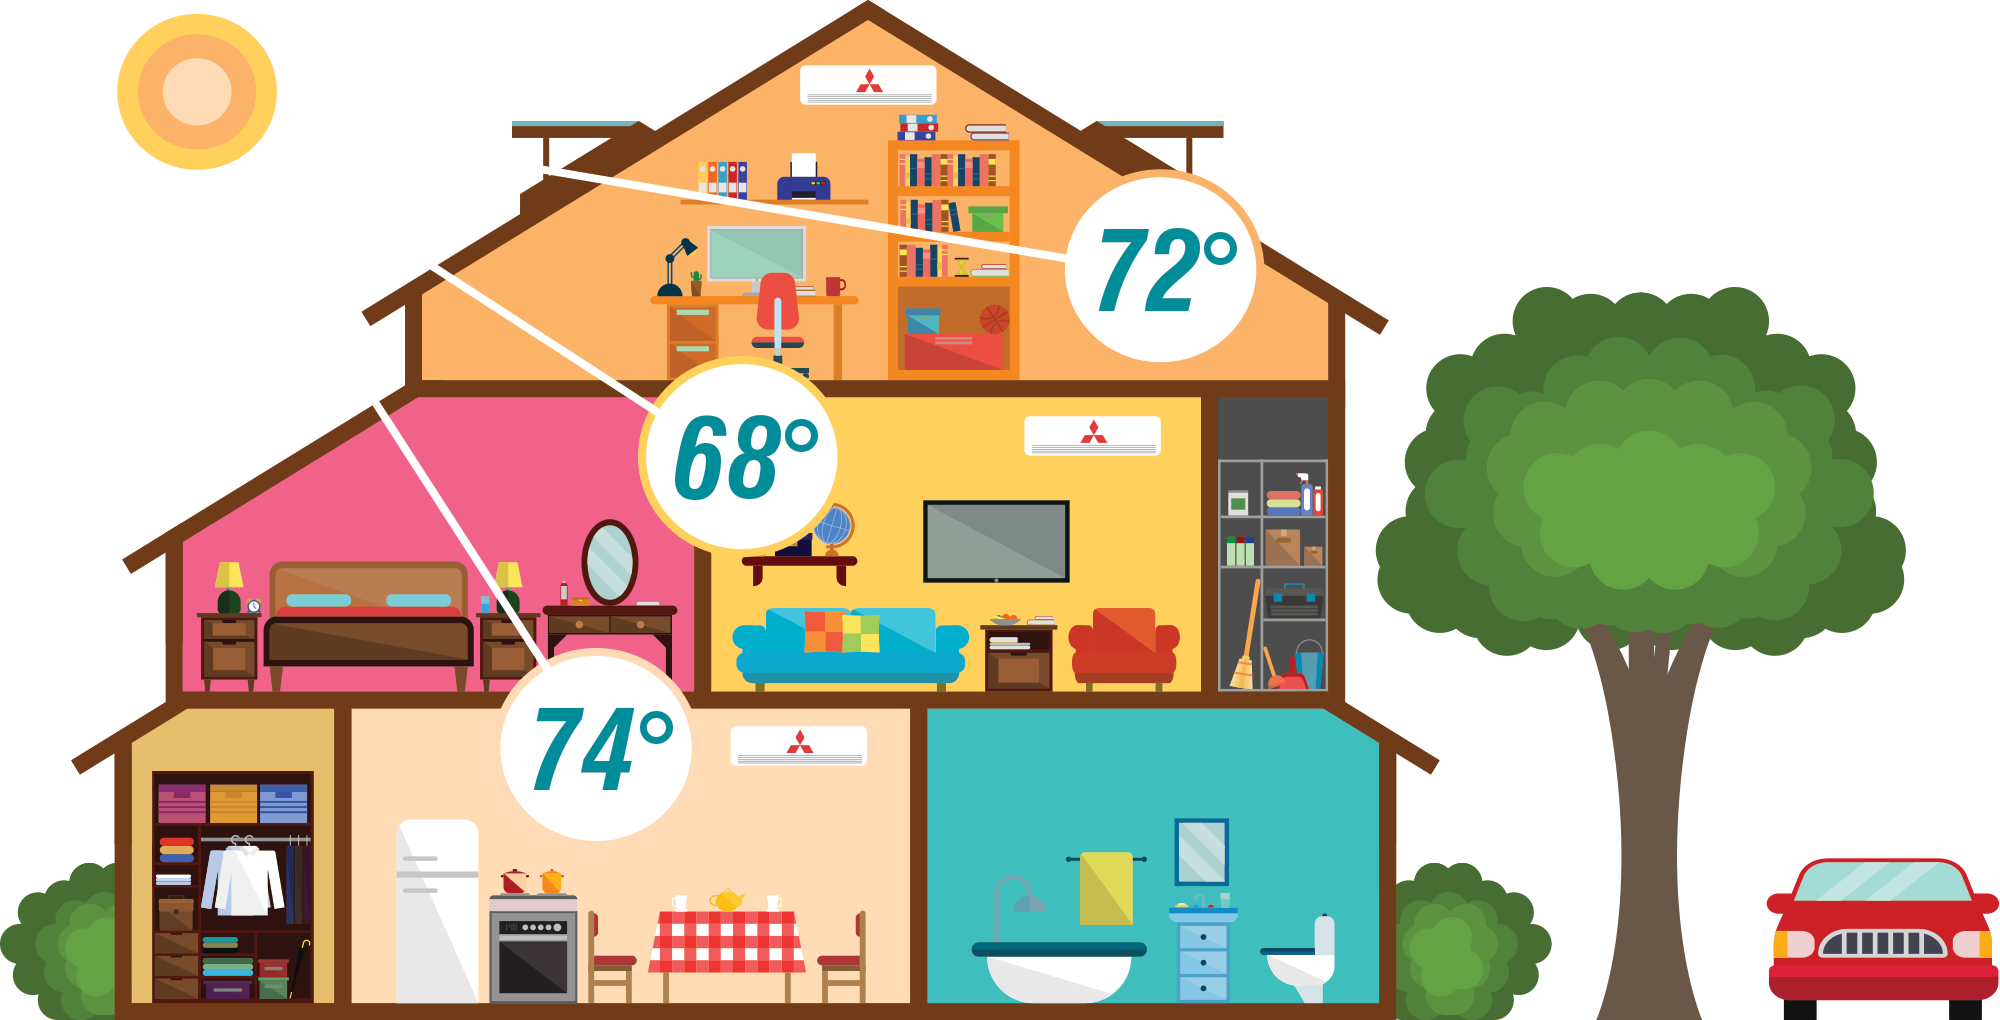 Heat clipart room temperature. Efficient ductless heating and